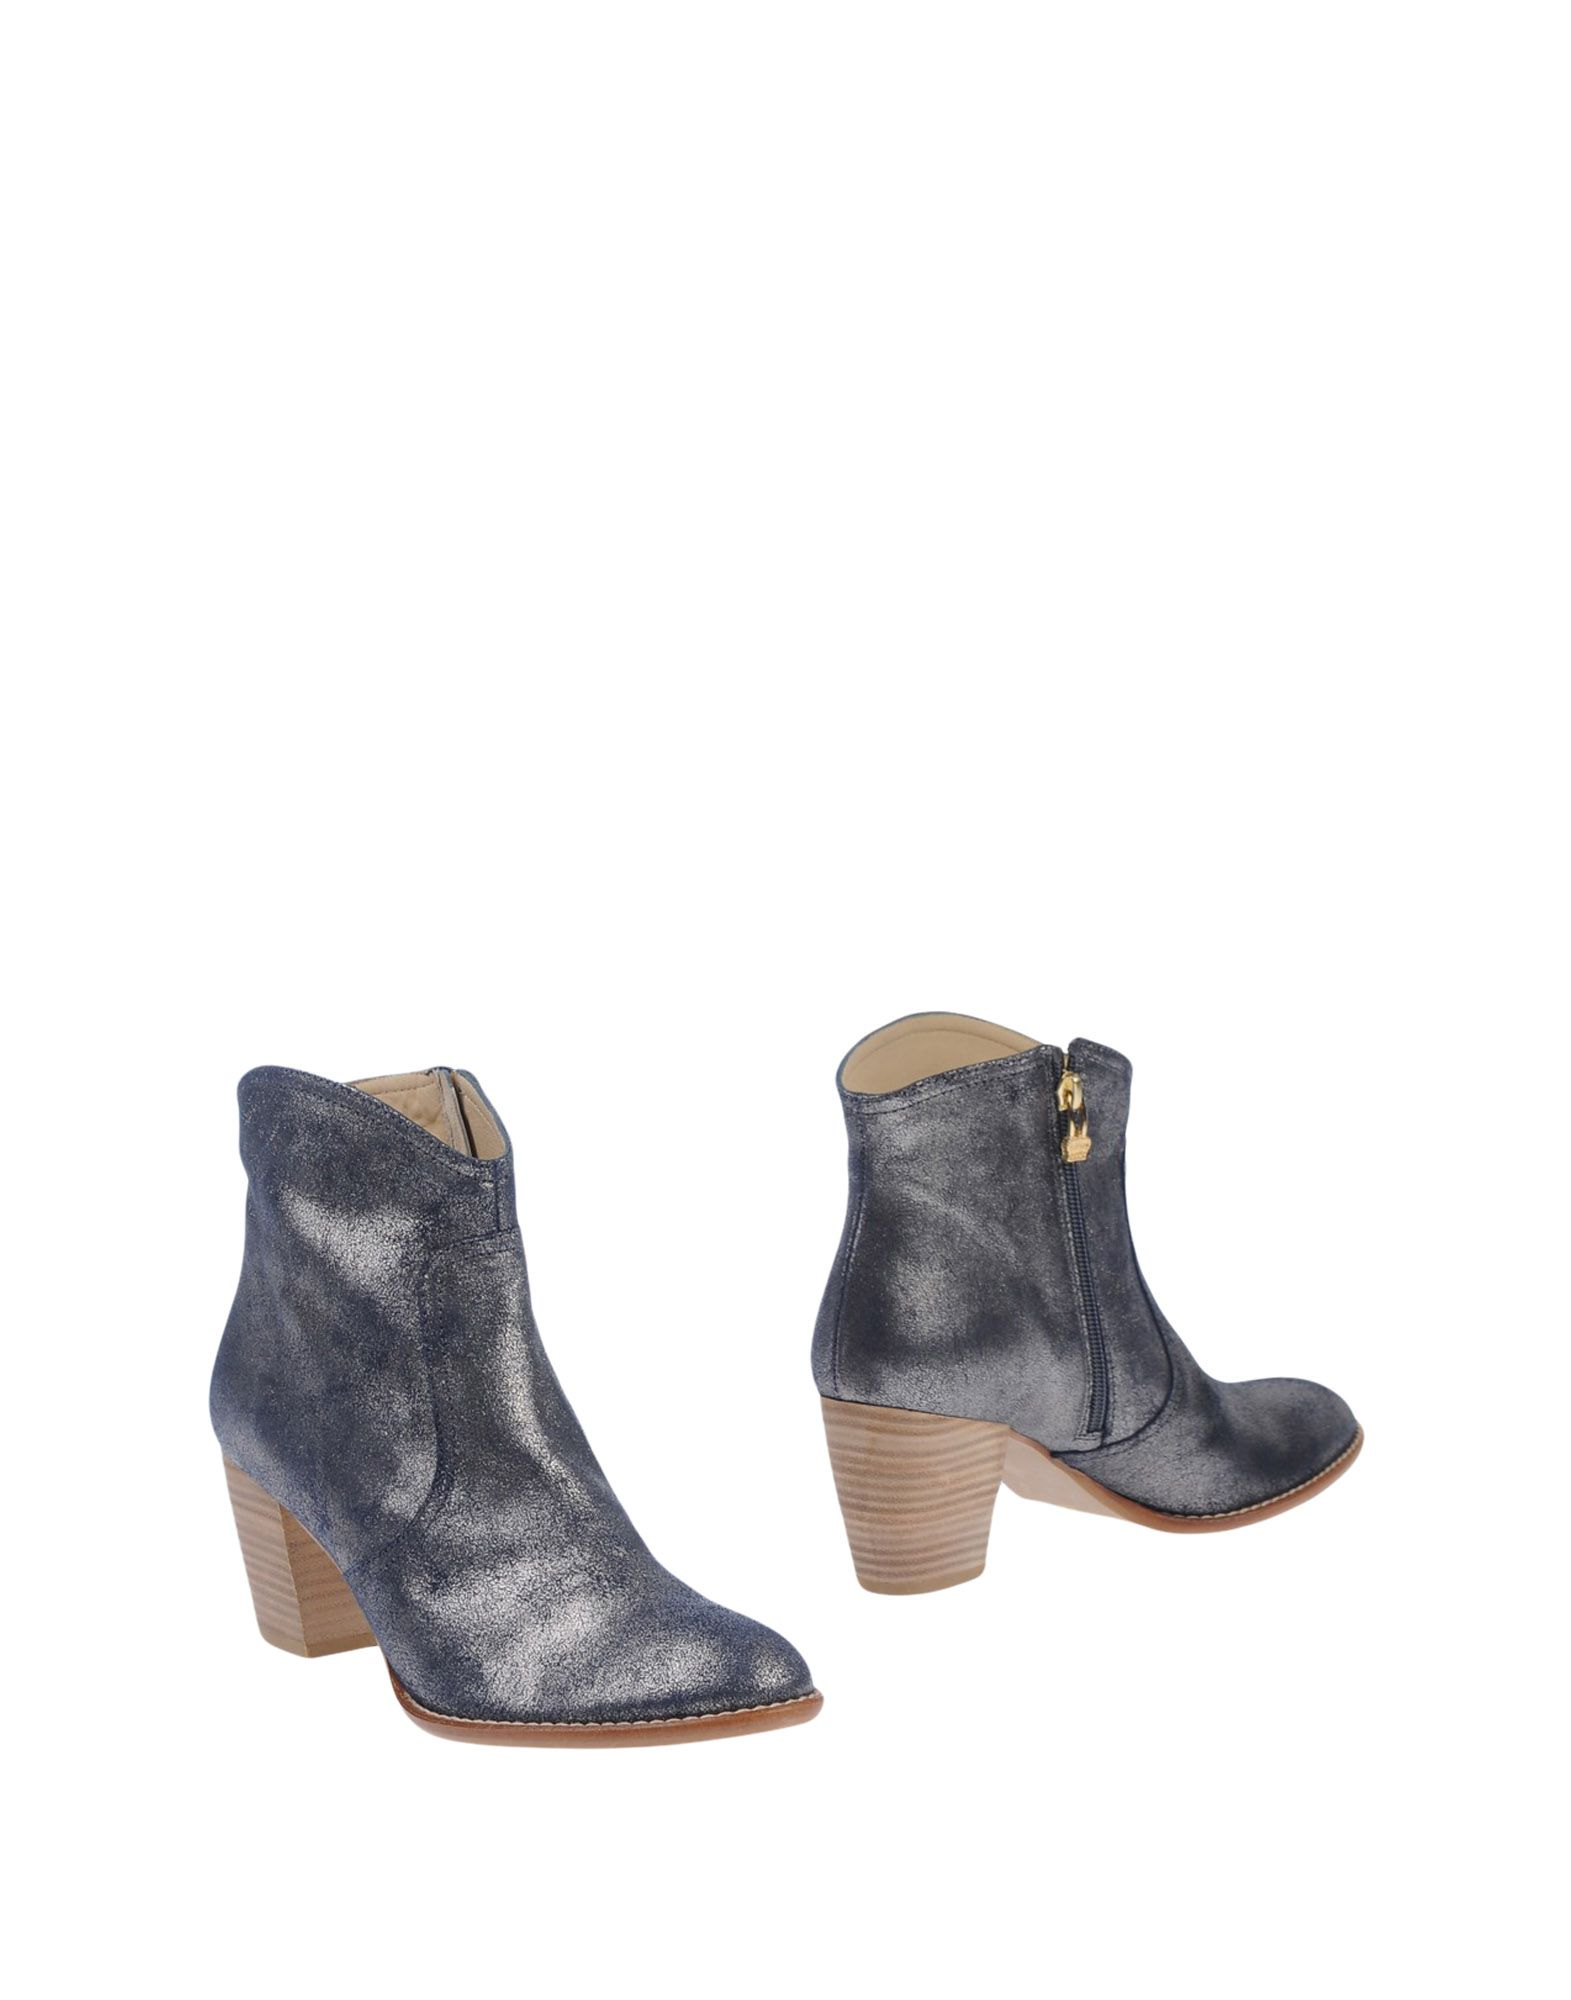 AUGUSTE Ankle Boot in Slate Blue